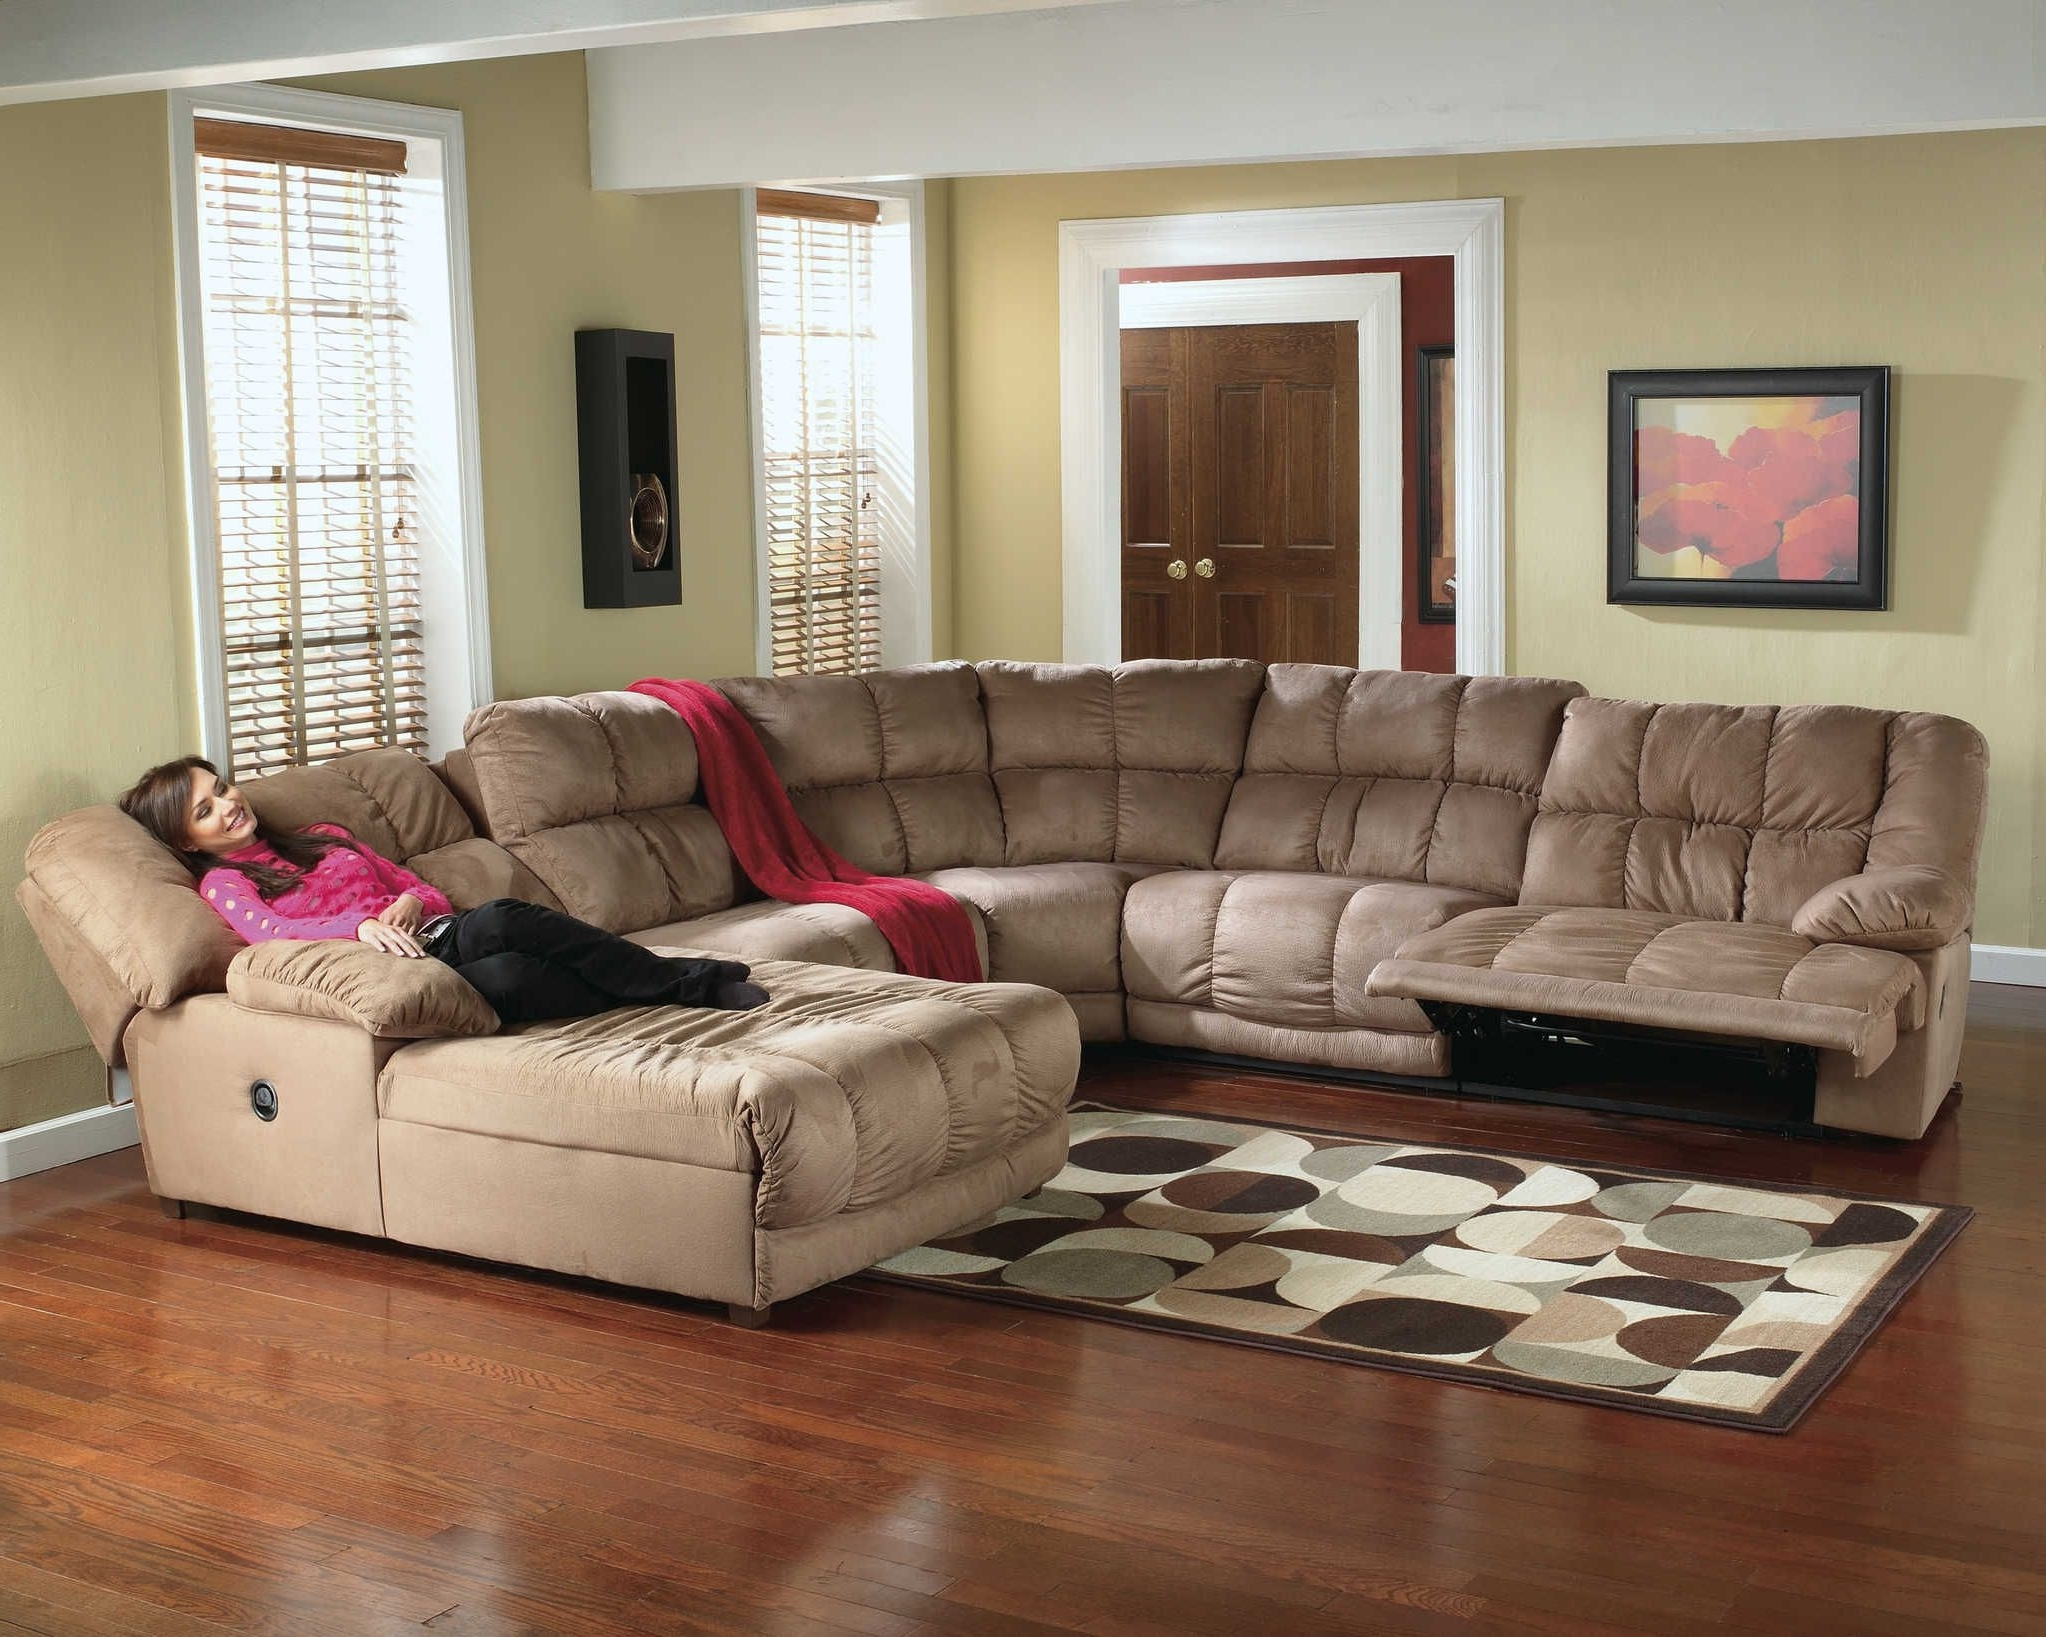 Most Recently Released Sectional Sofas With Recliner And Chaise Lounge Inside Microfiber Recliner Sectional (View 12 of 15)